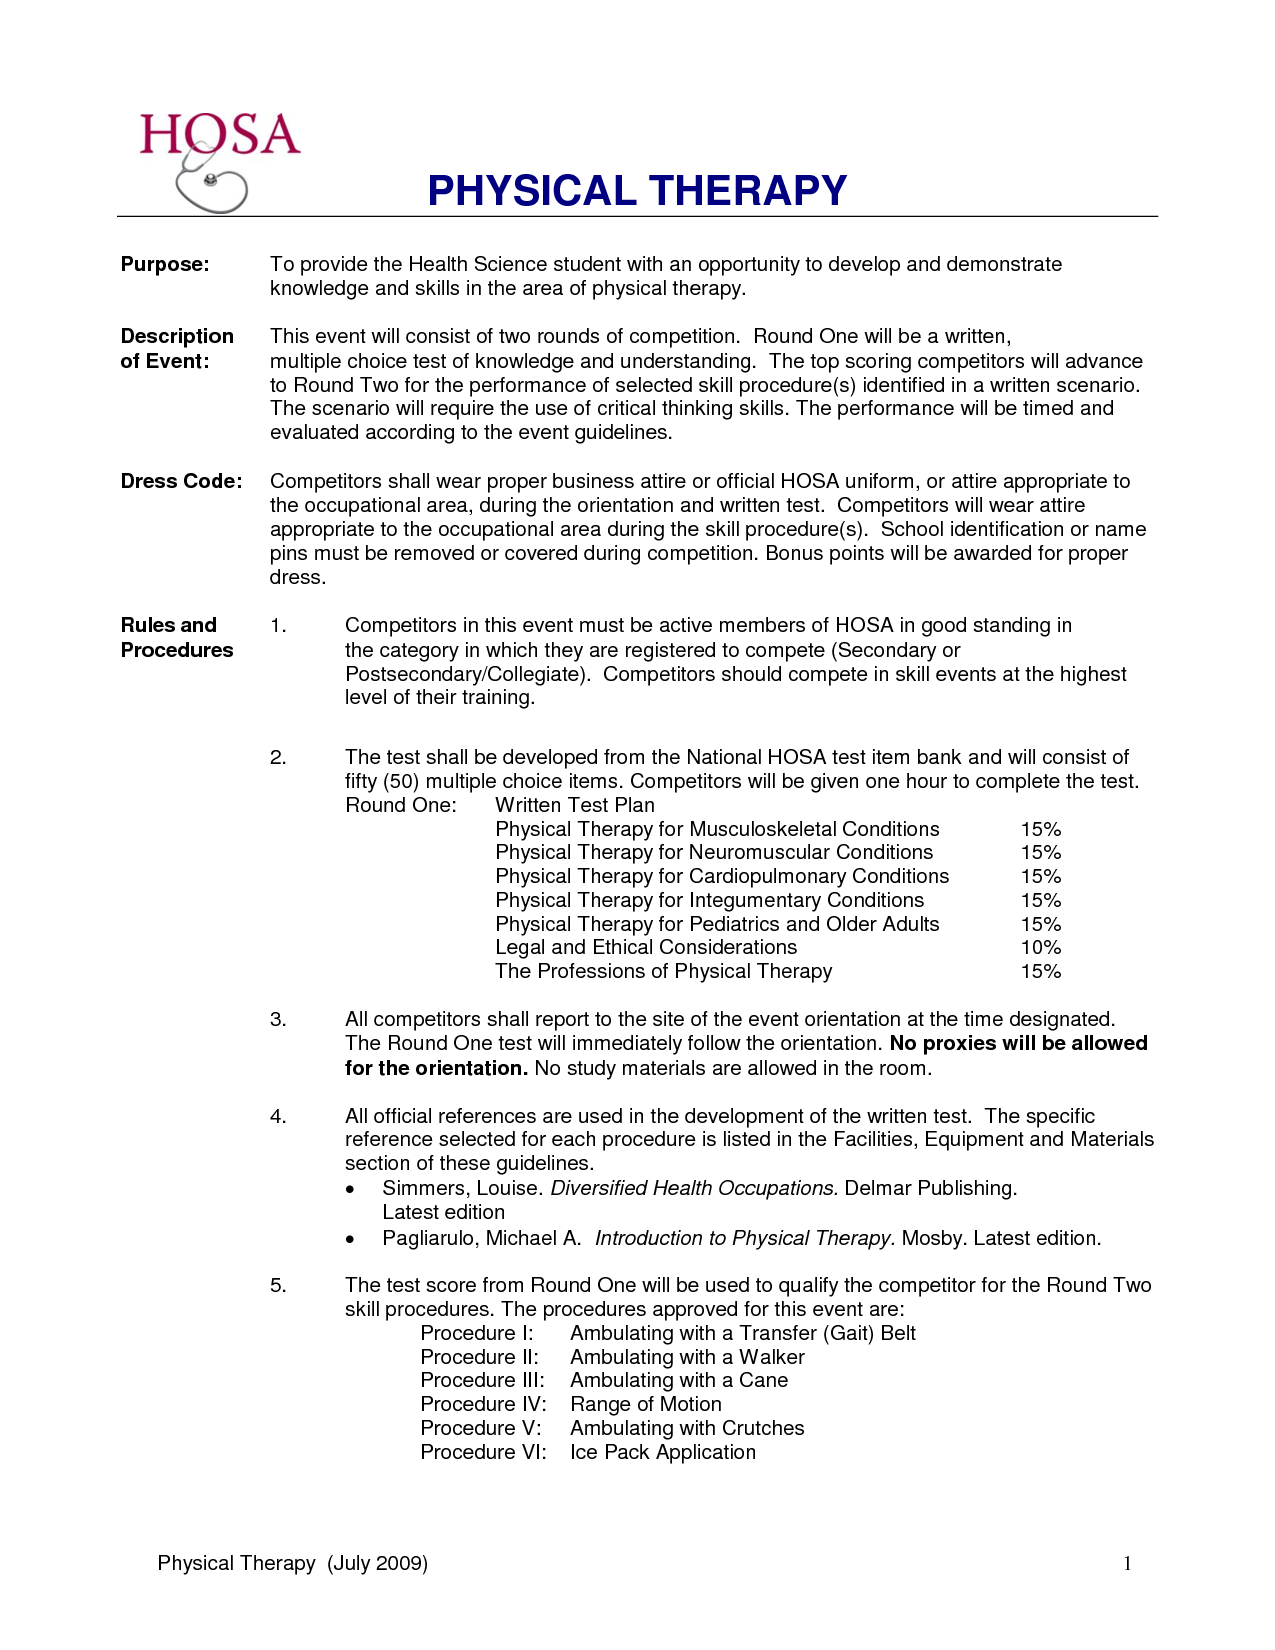 Physical therapist Cover Letter Template Samples